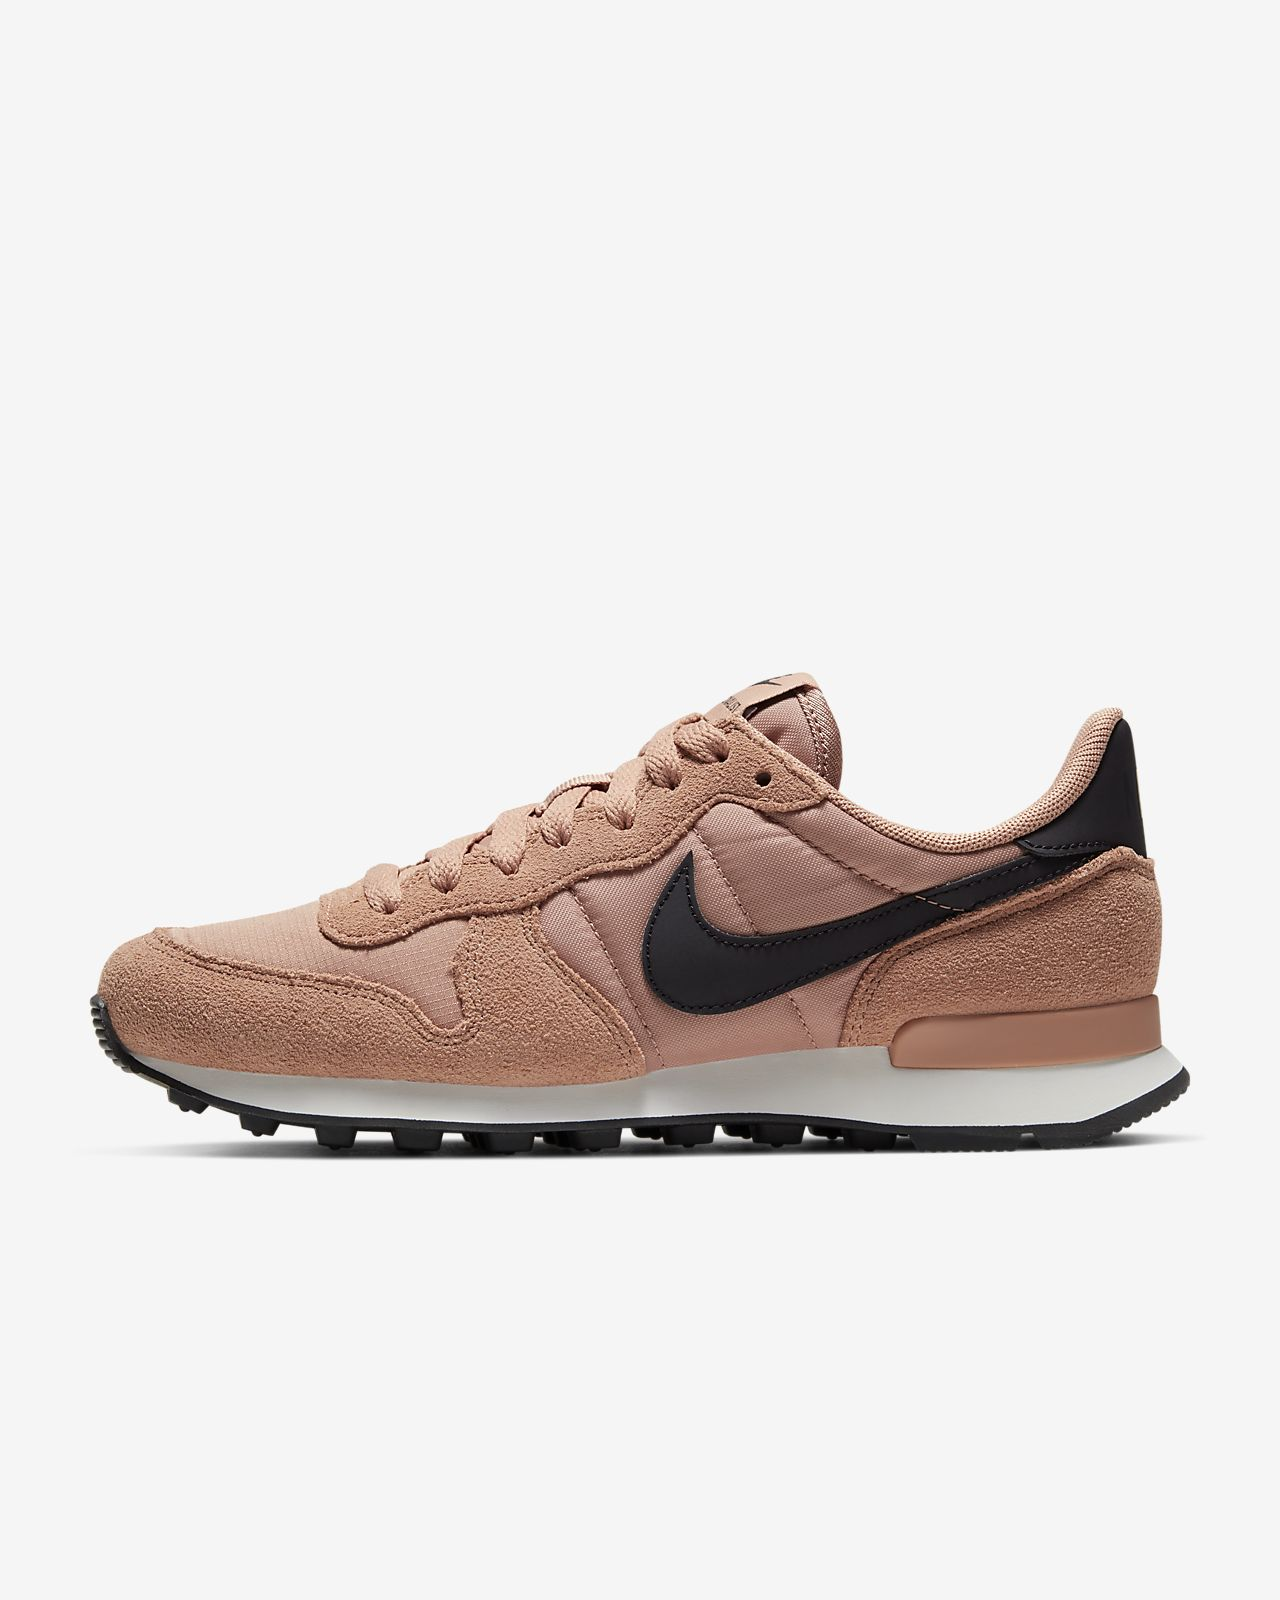 wholesale dealer 21bfb 966a0 Low Resolution Nike Internationalist Damenschuh Nike Internationalist  Damenschuh